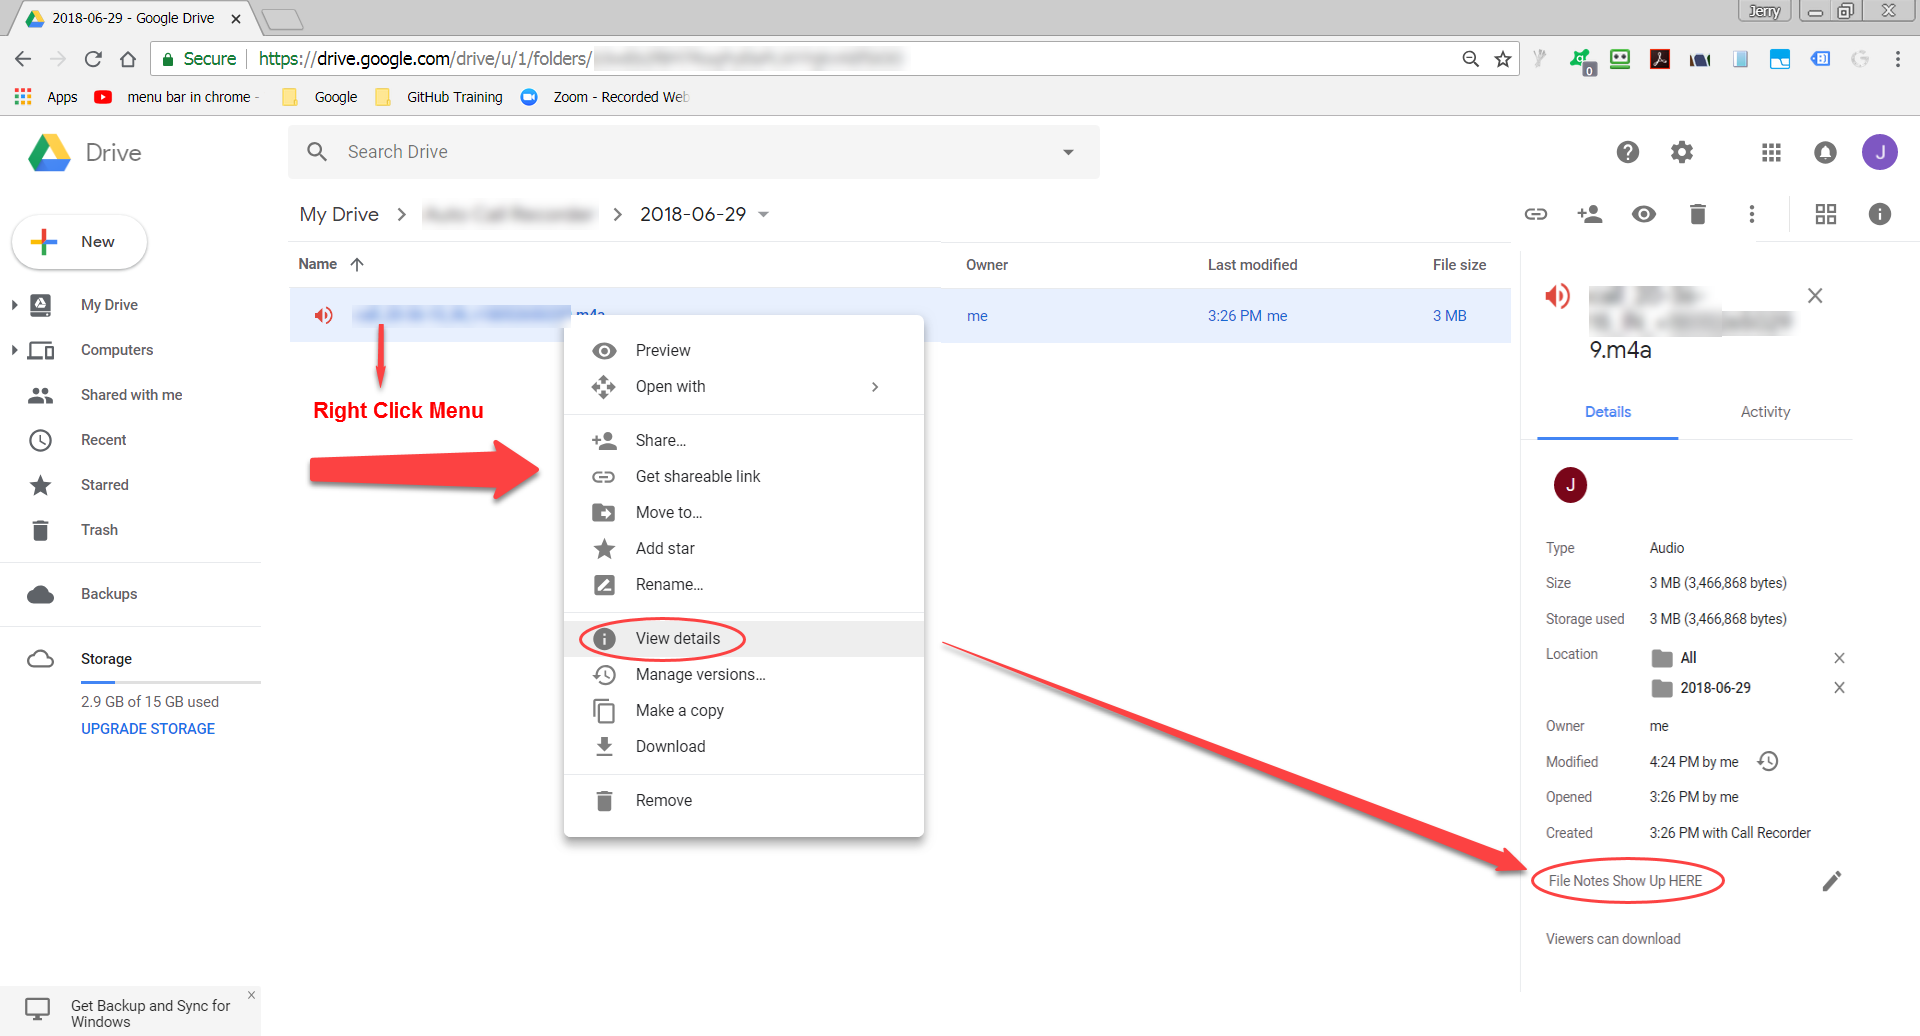 how to open a document from google drive